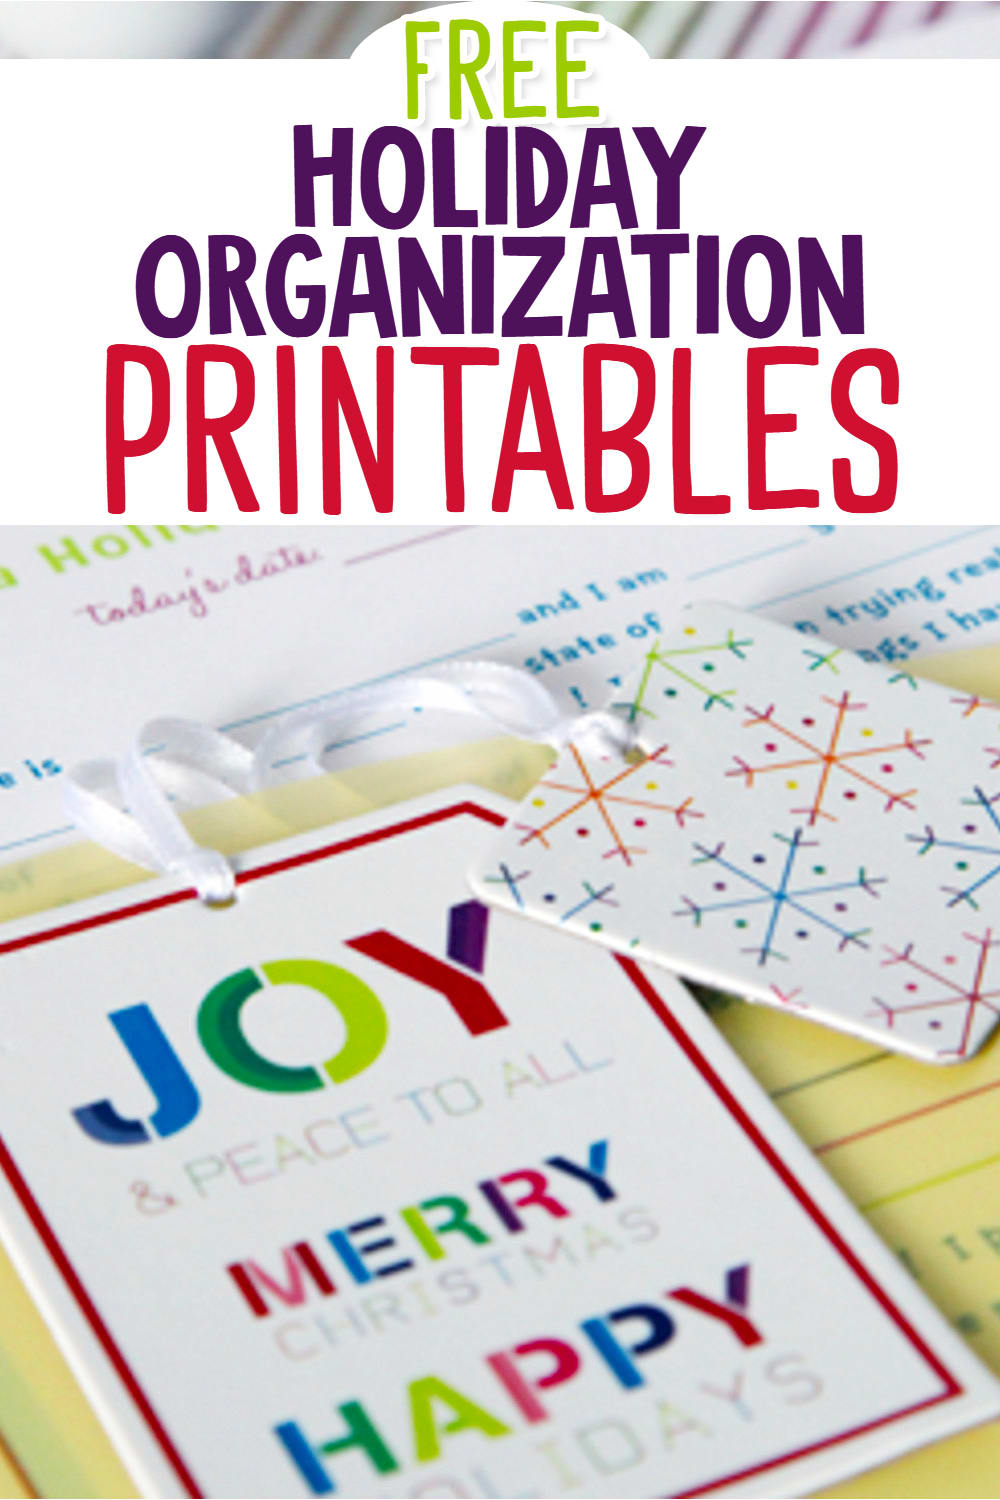 Holiday Organization Planners and Printables - Free Printable Holiday Planners and Christmas Checklist Printables.  Feeling OVERWHELMED by the Holidays?  Organize your Holiday and Christmas plans with these free printable worksheets, checklists, planners, schedules, trackers, gift tags and more!